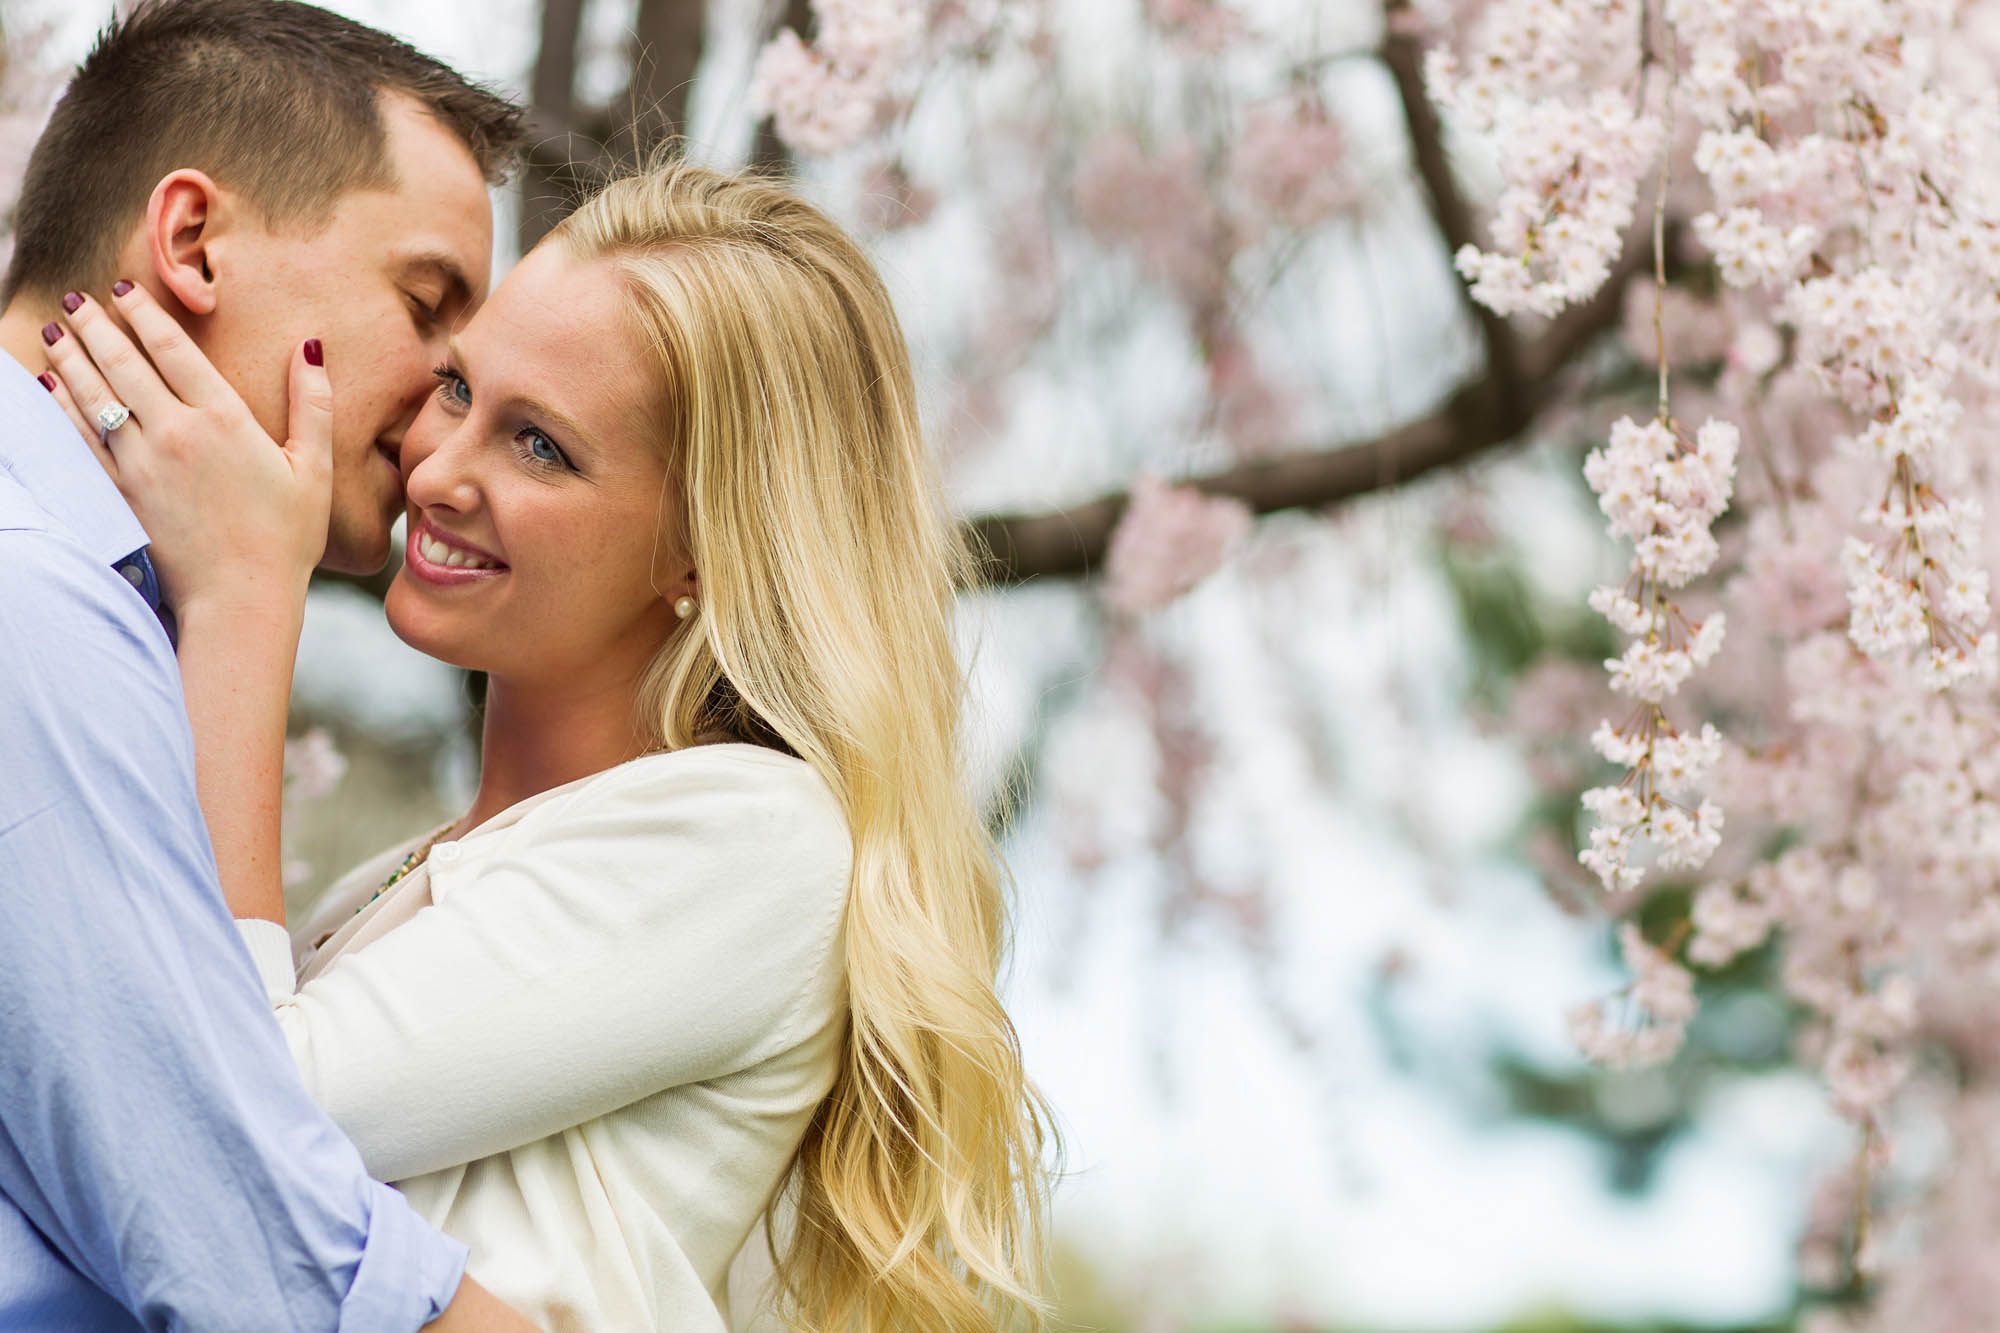 An engaged couple stand underneath a tree in spring that is flowering while the man leans into to kiss the woman's cheek on a bright day in Cleveland, Ohio.